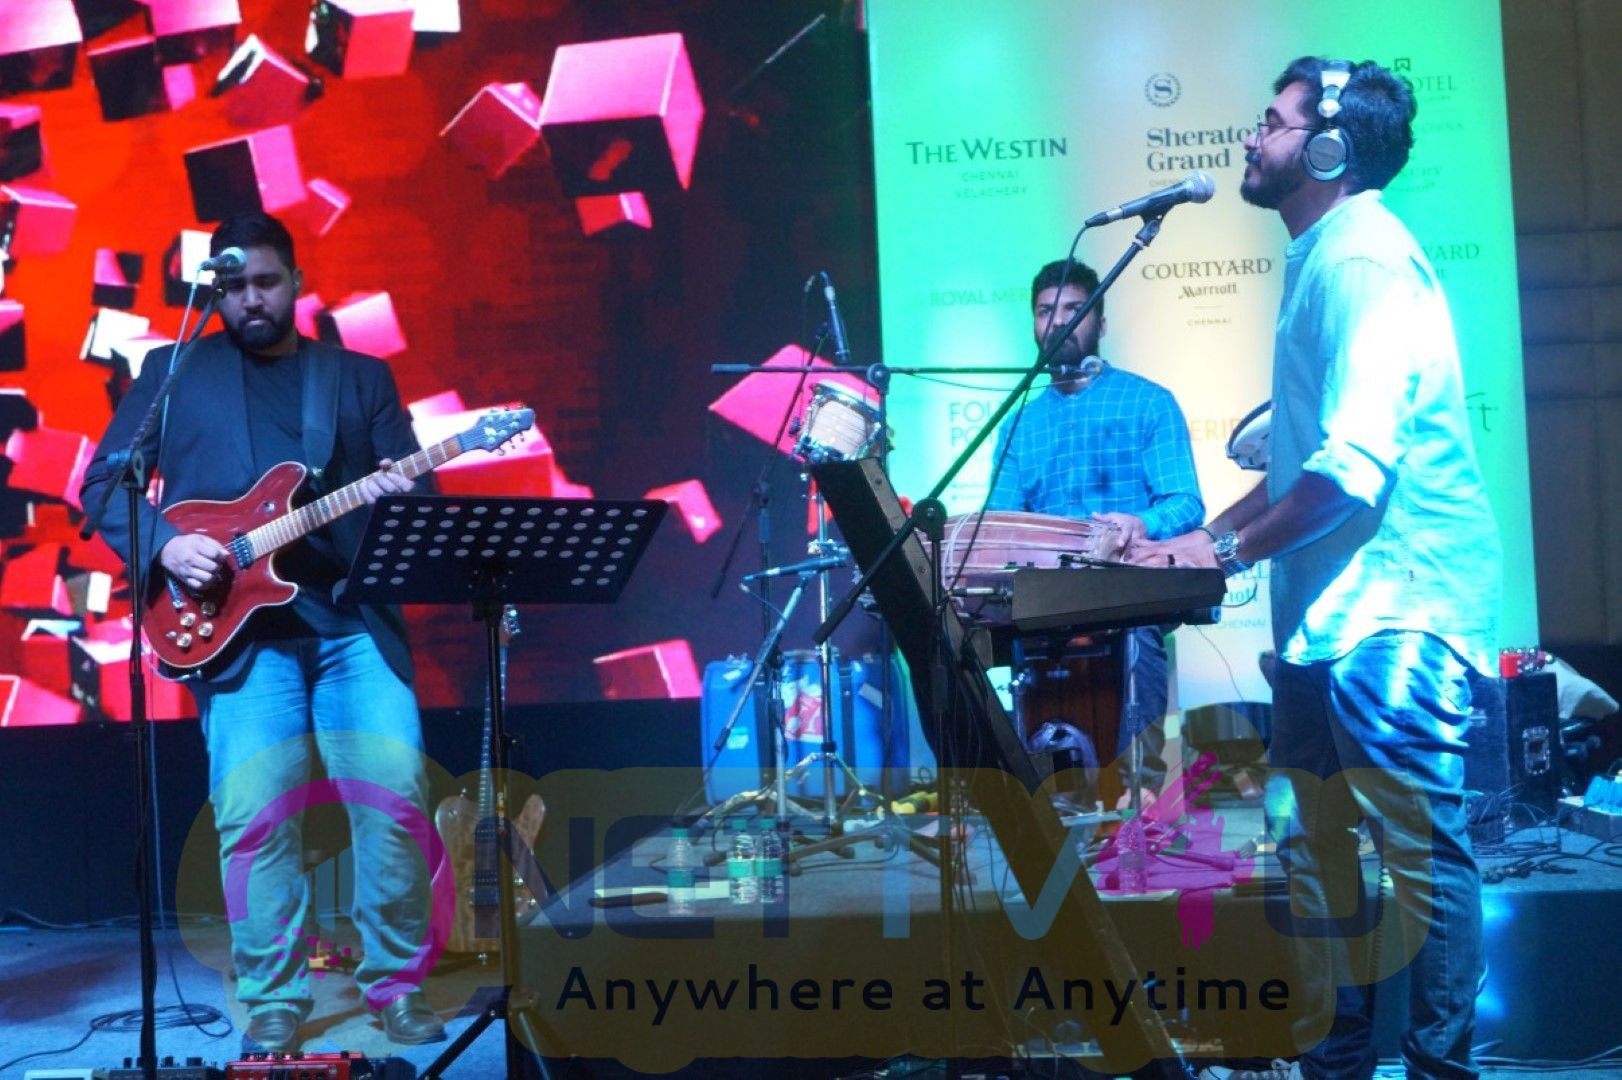 Marriot International Conducted An Opportunistic Meet At  Westin Hotel Velachery Along With A Soulful Music By Karthick Iyers  IndoSoul Band Event  Images